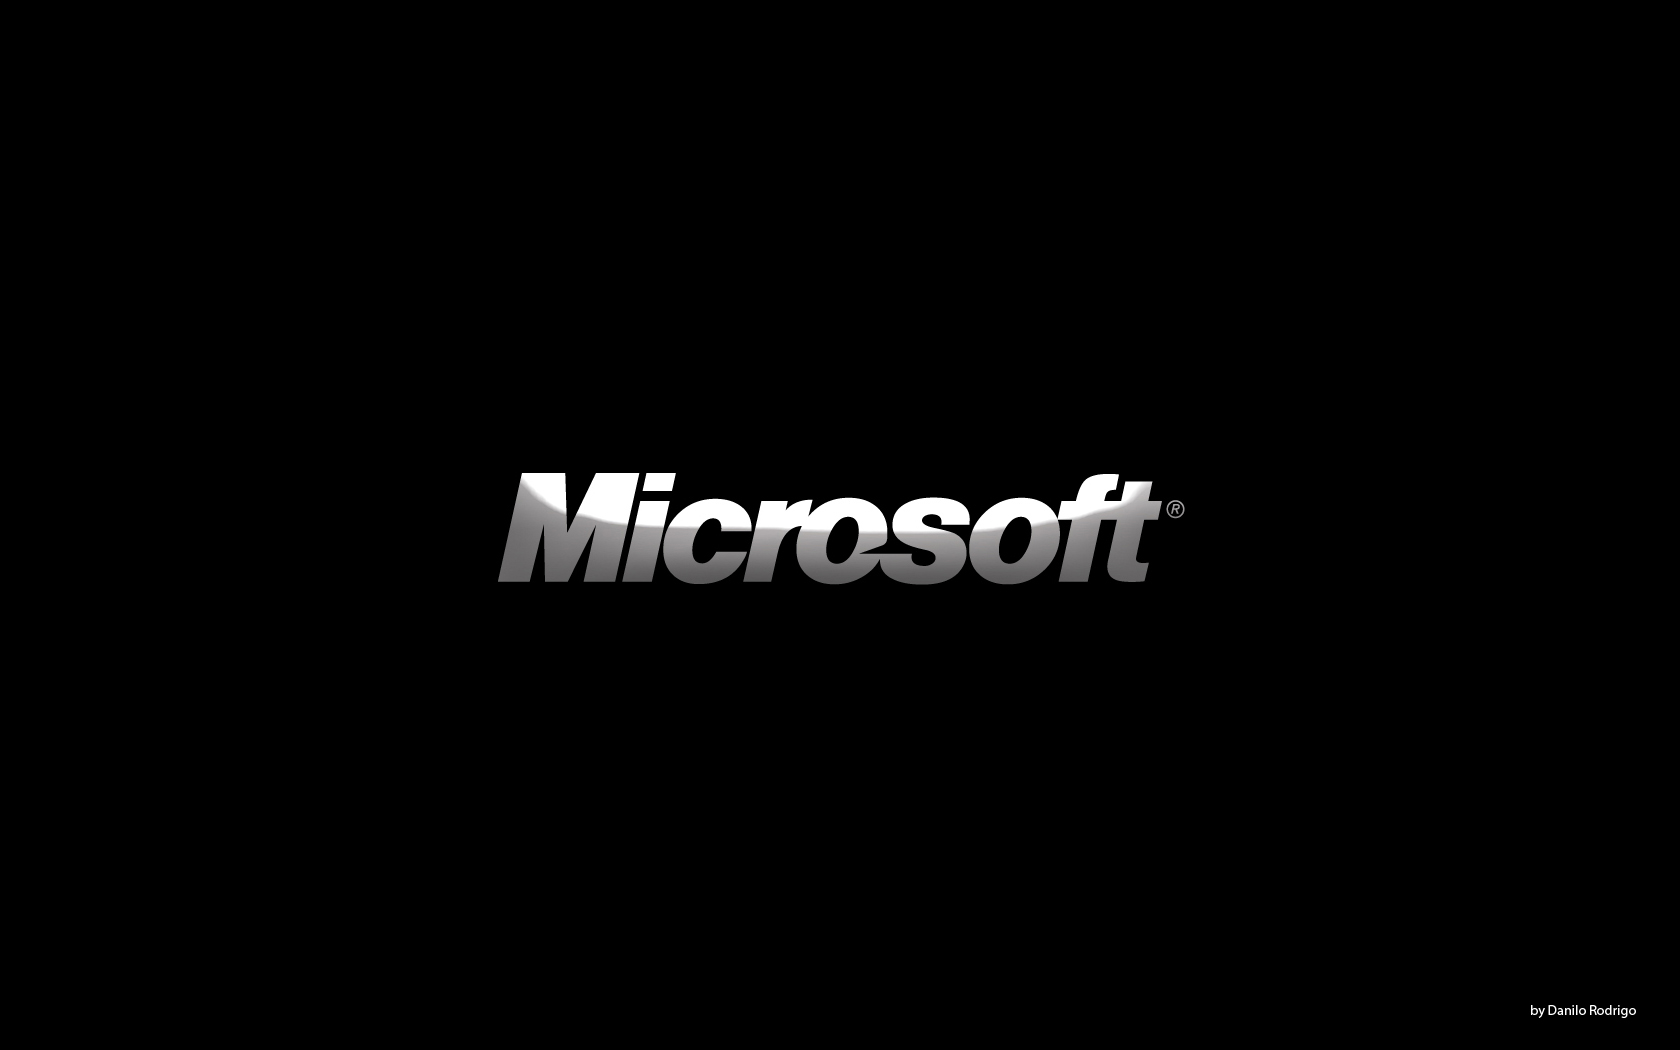 Microsoft Wallpaper Pictures